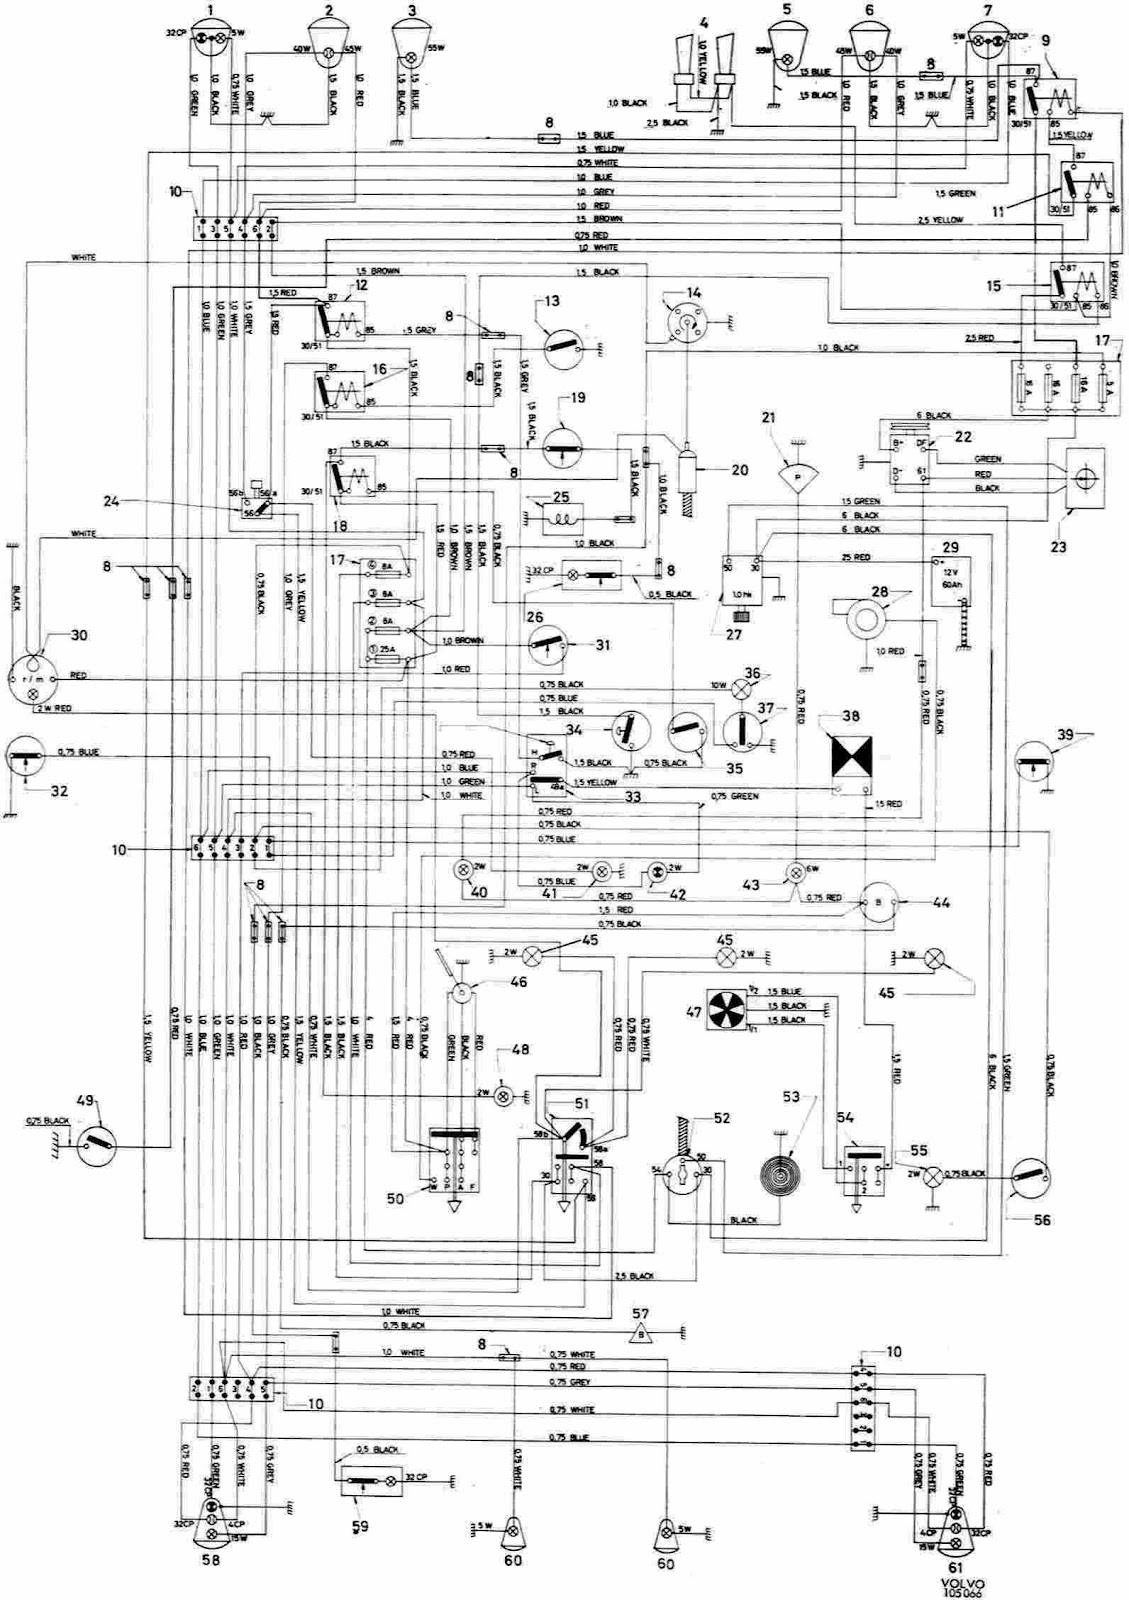 1996 volvo 850 wiring diagrams pdf 34 wiring diagram images 1998 volvo v70 stereo wiring volvo [ 1129 x 1600 Pixel ]